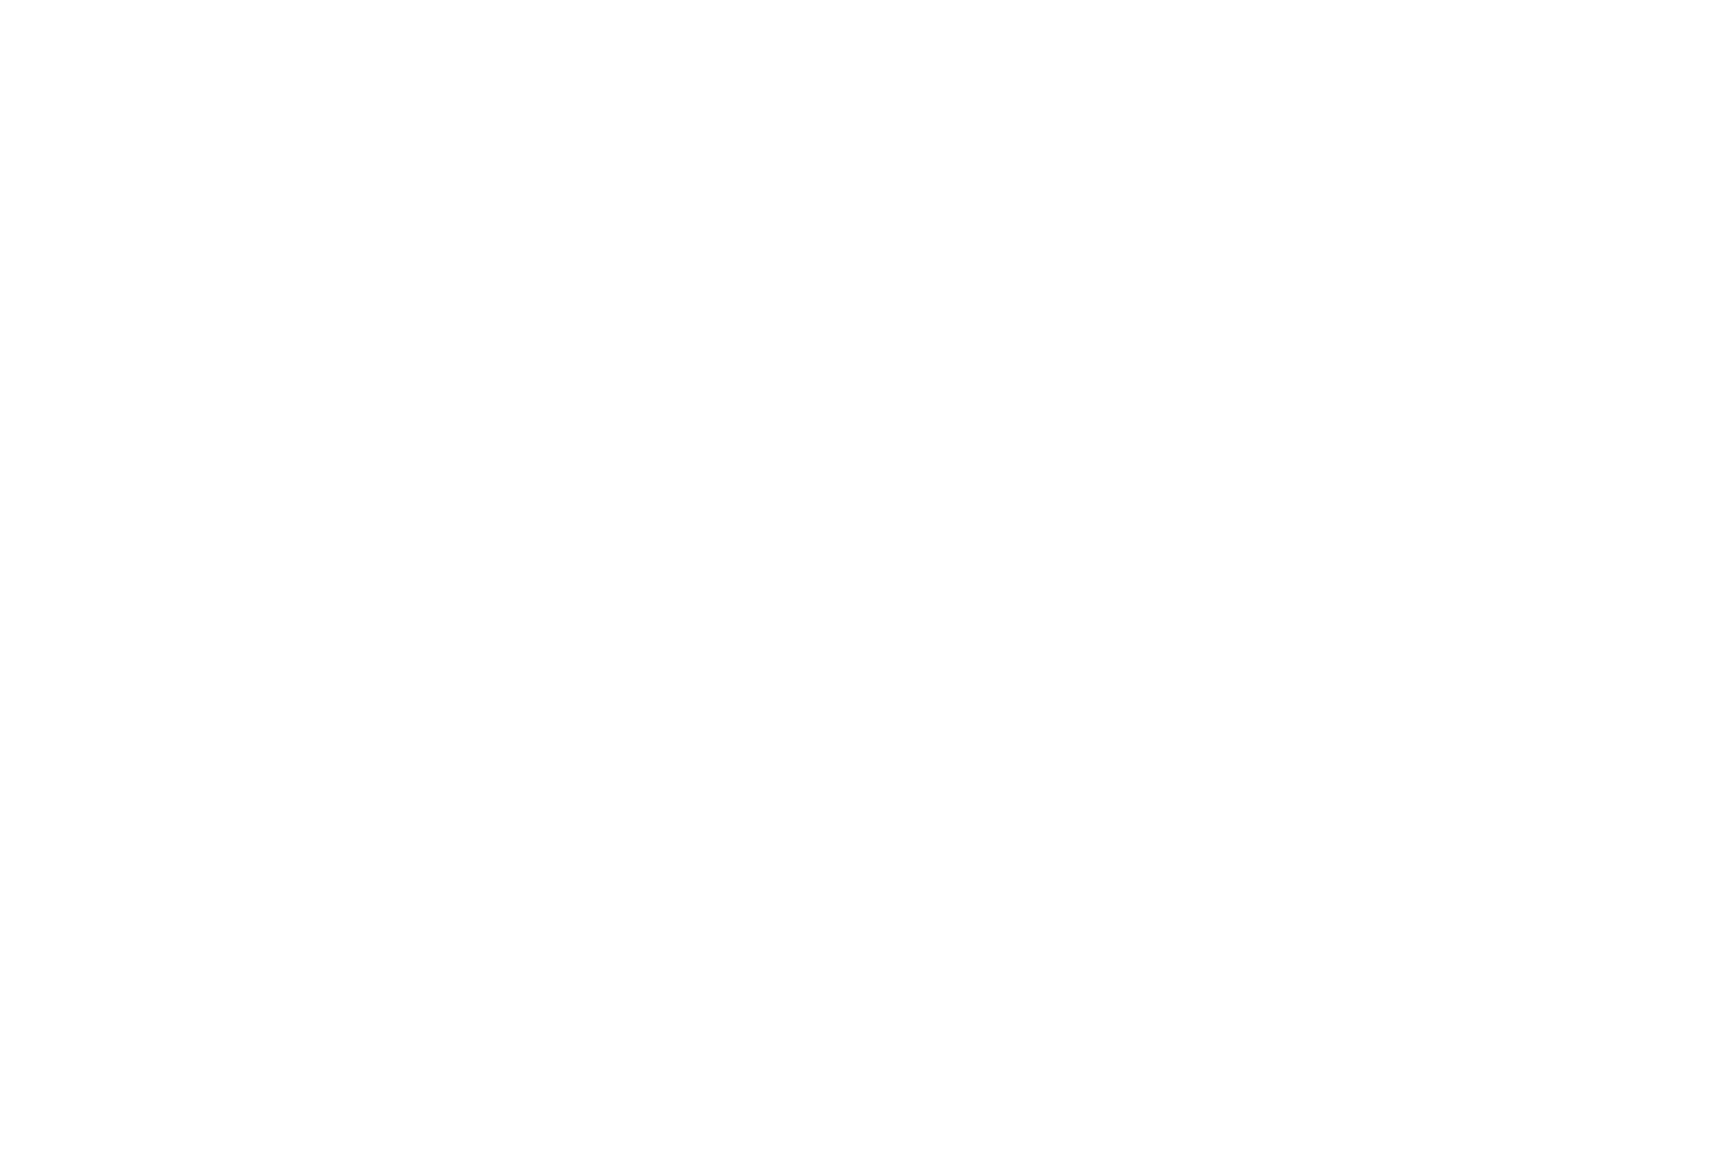 OFFICIAL SELECTION - Sioux Empire Film Festival - 2018.png